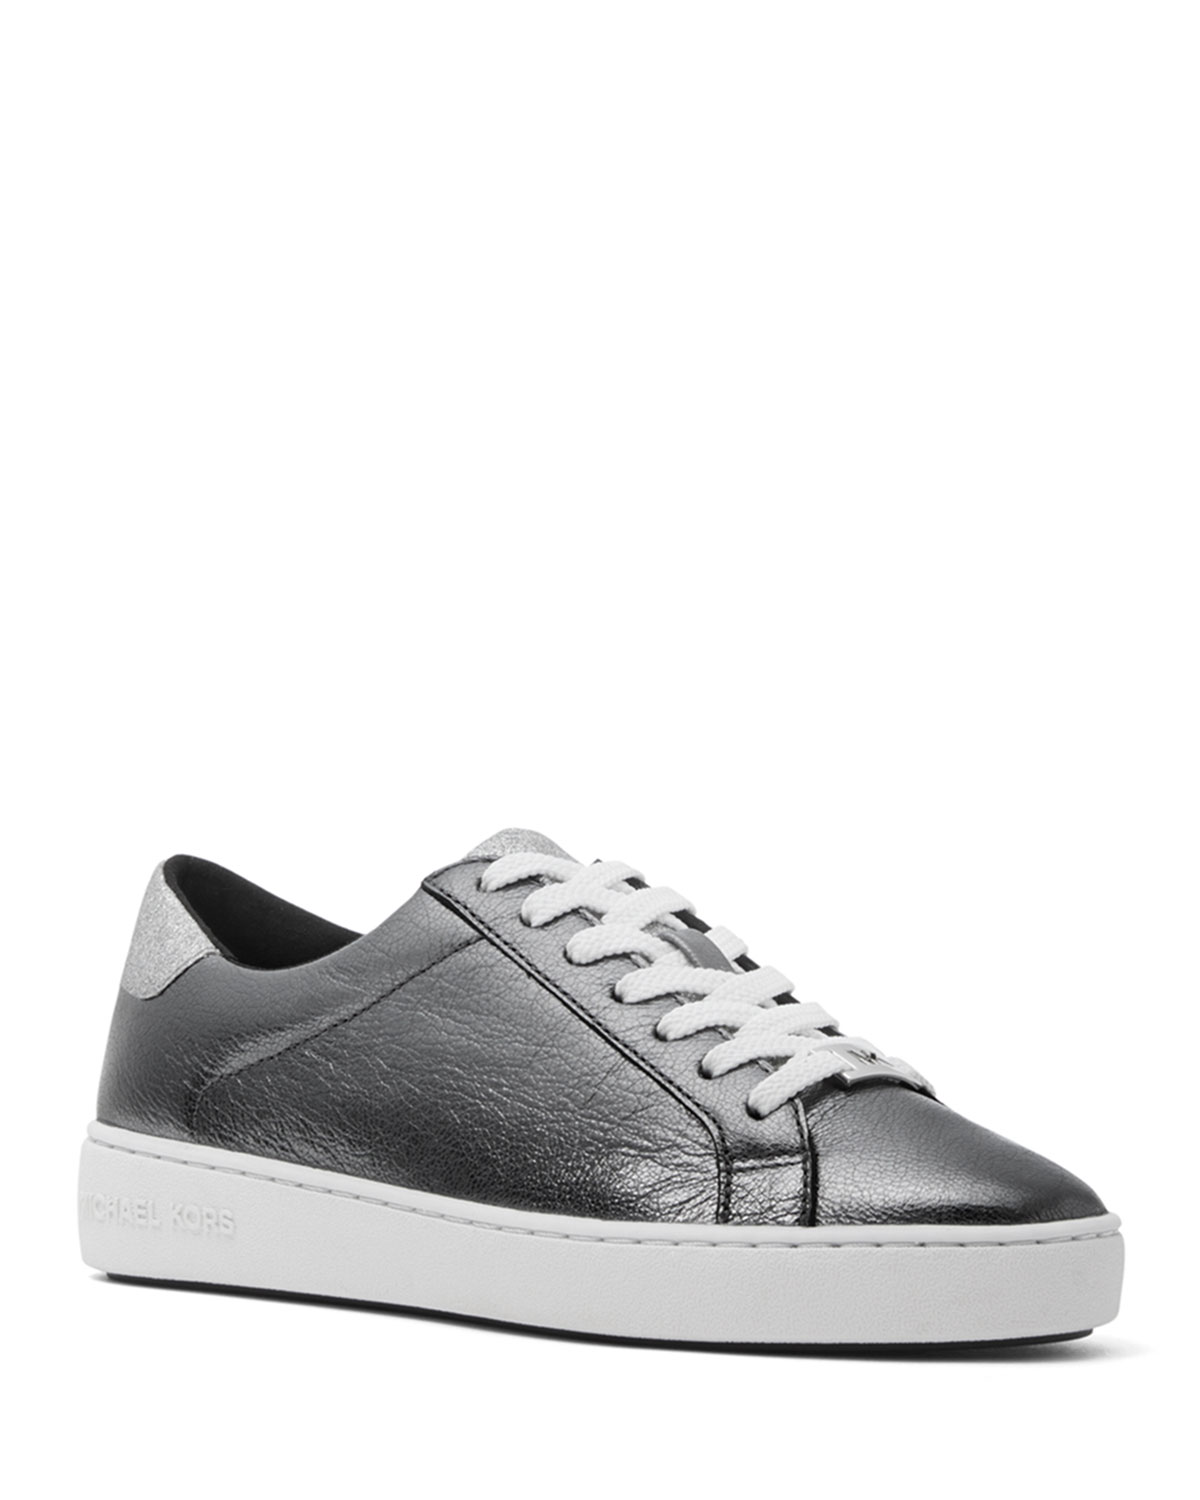 05ad0a4bd3bbf MICHAEL Michael Kors Irving Metallic Leather Low-Top Sneakers ...